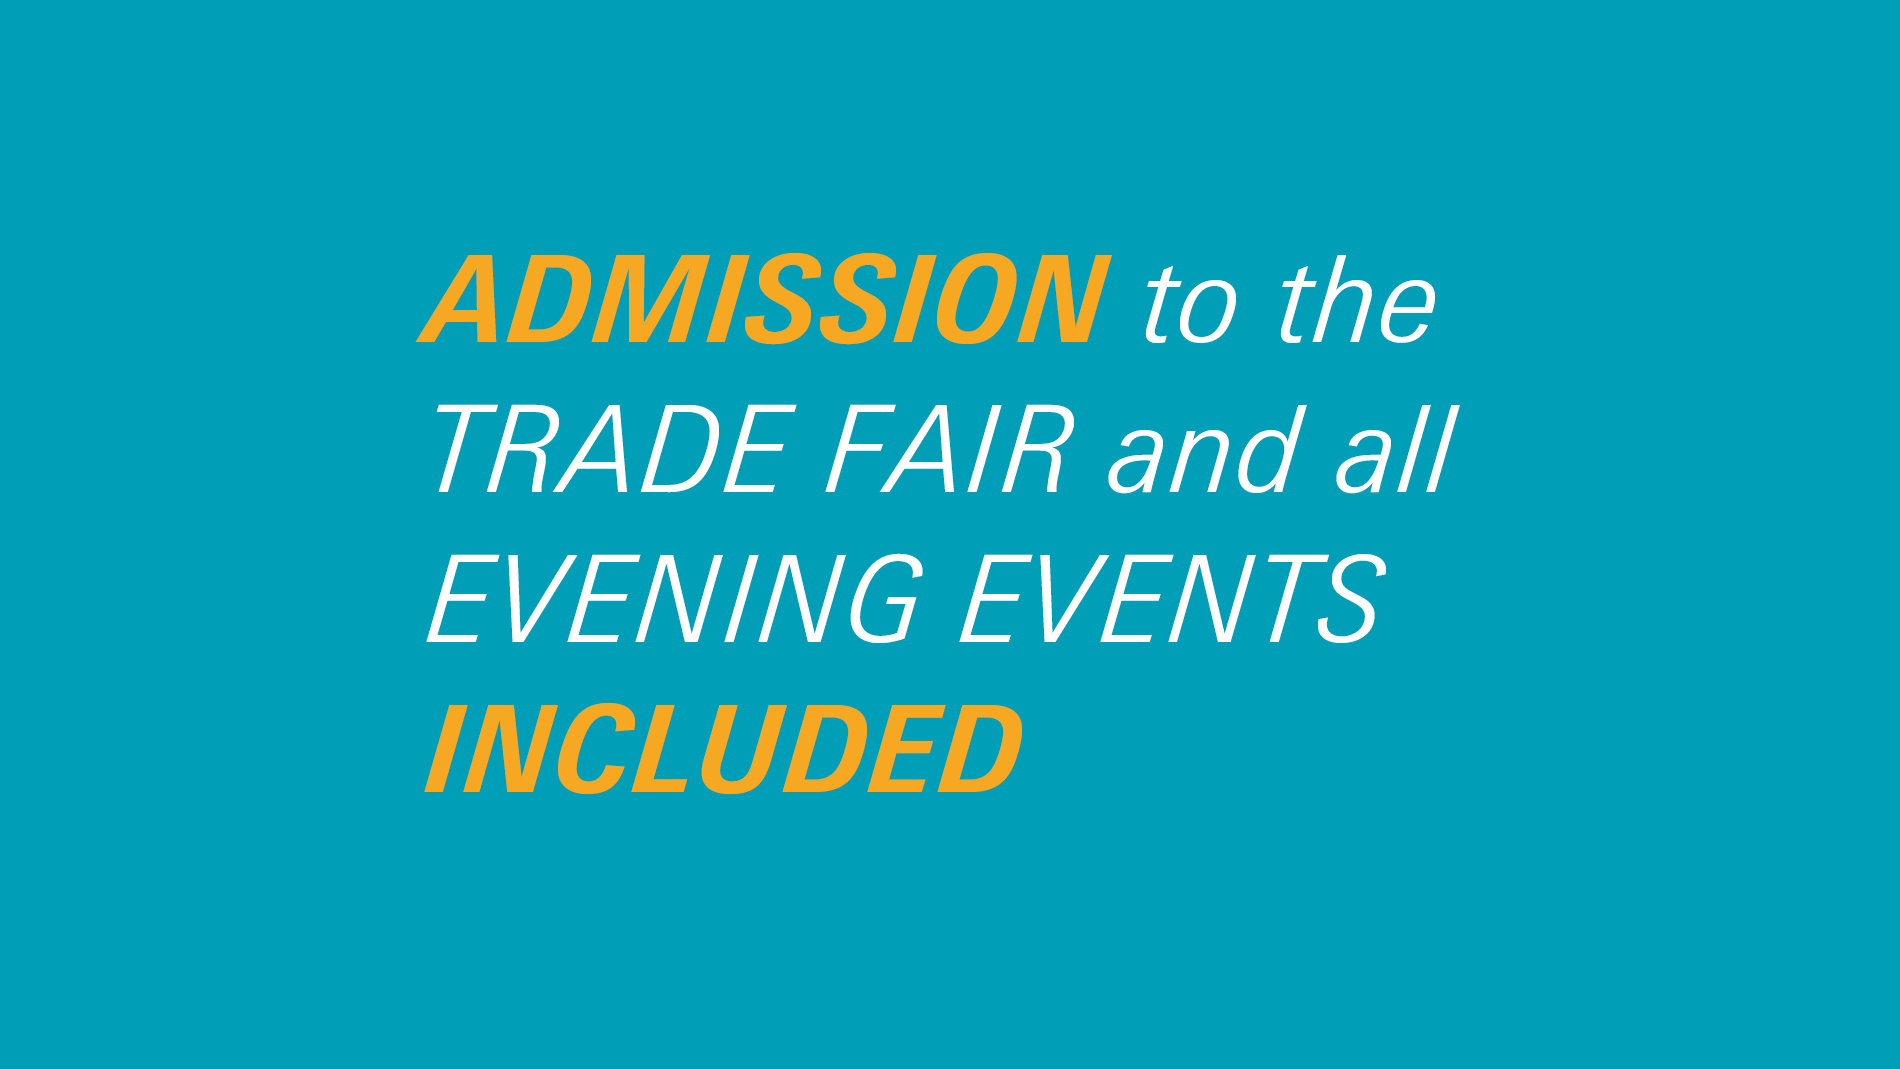 Admission to the trade fair and all evening events included